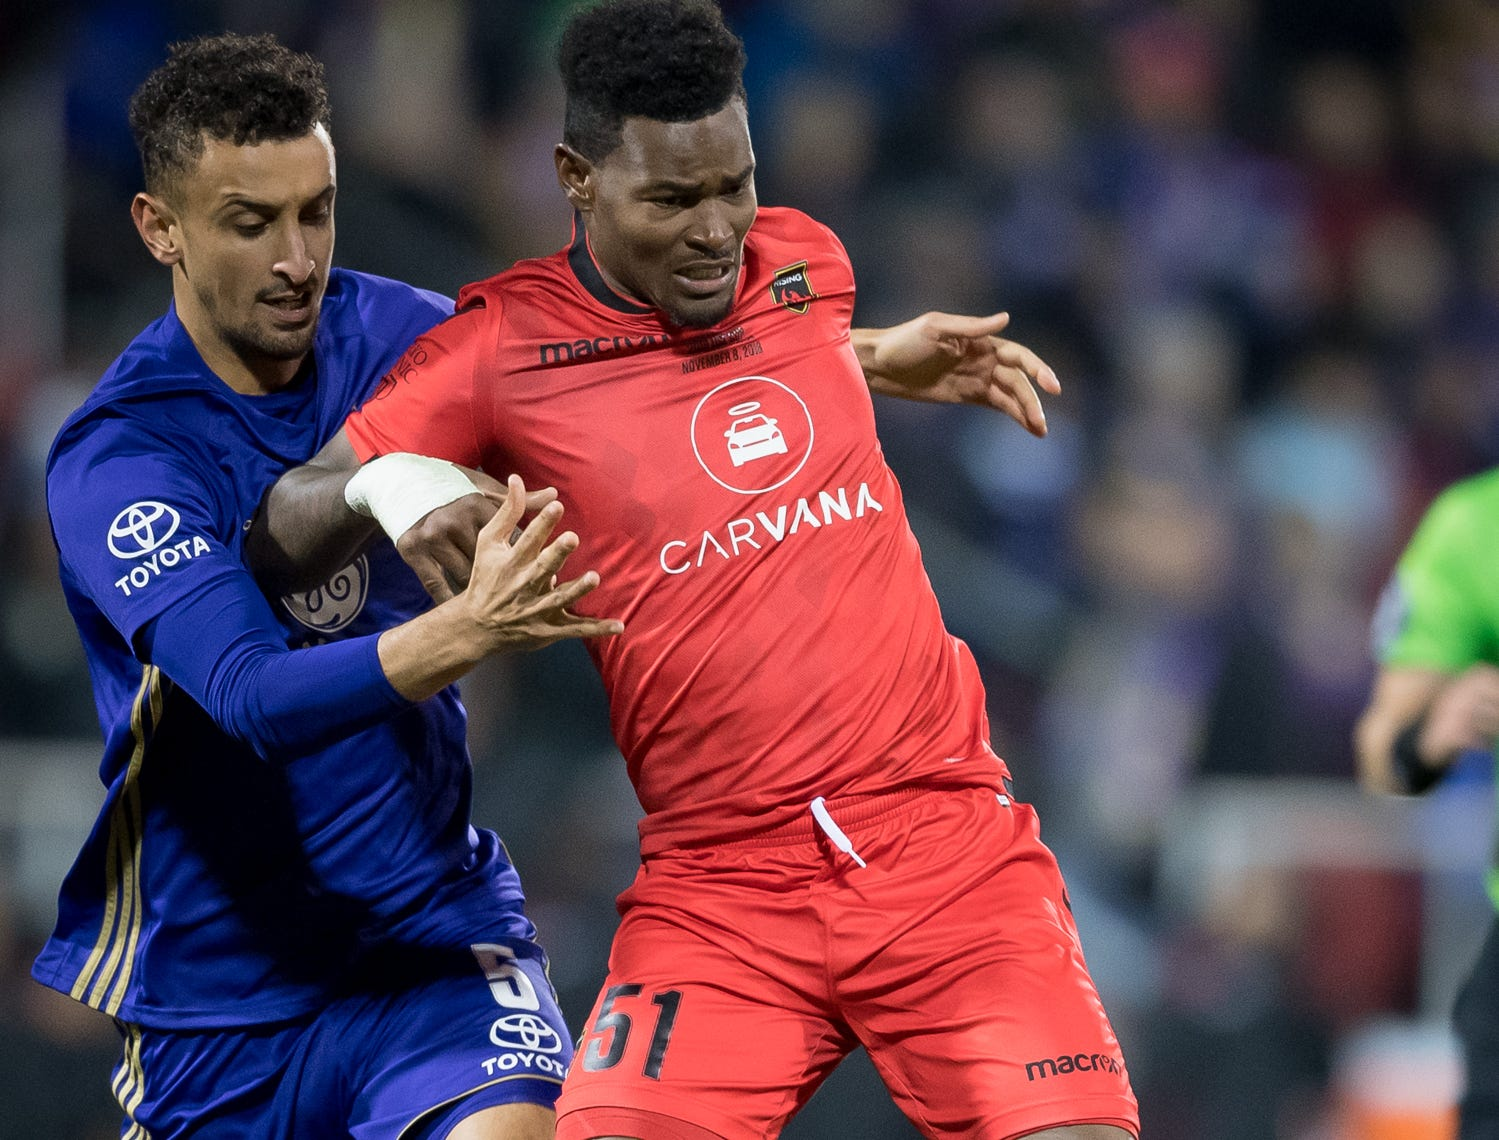 Louisville City FC defender Paco Craig (5) collides with Phoenix Rising FC forward Kevaughn Frater (51) during the USL Cup final played at Lynn Stadium on the campus of the University of Louisville, Louisville, Ky., Thursday, Nov., 8, 2018. (PHOTO Bryan Woolston)